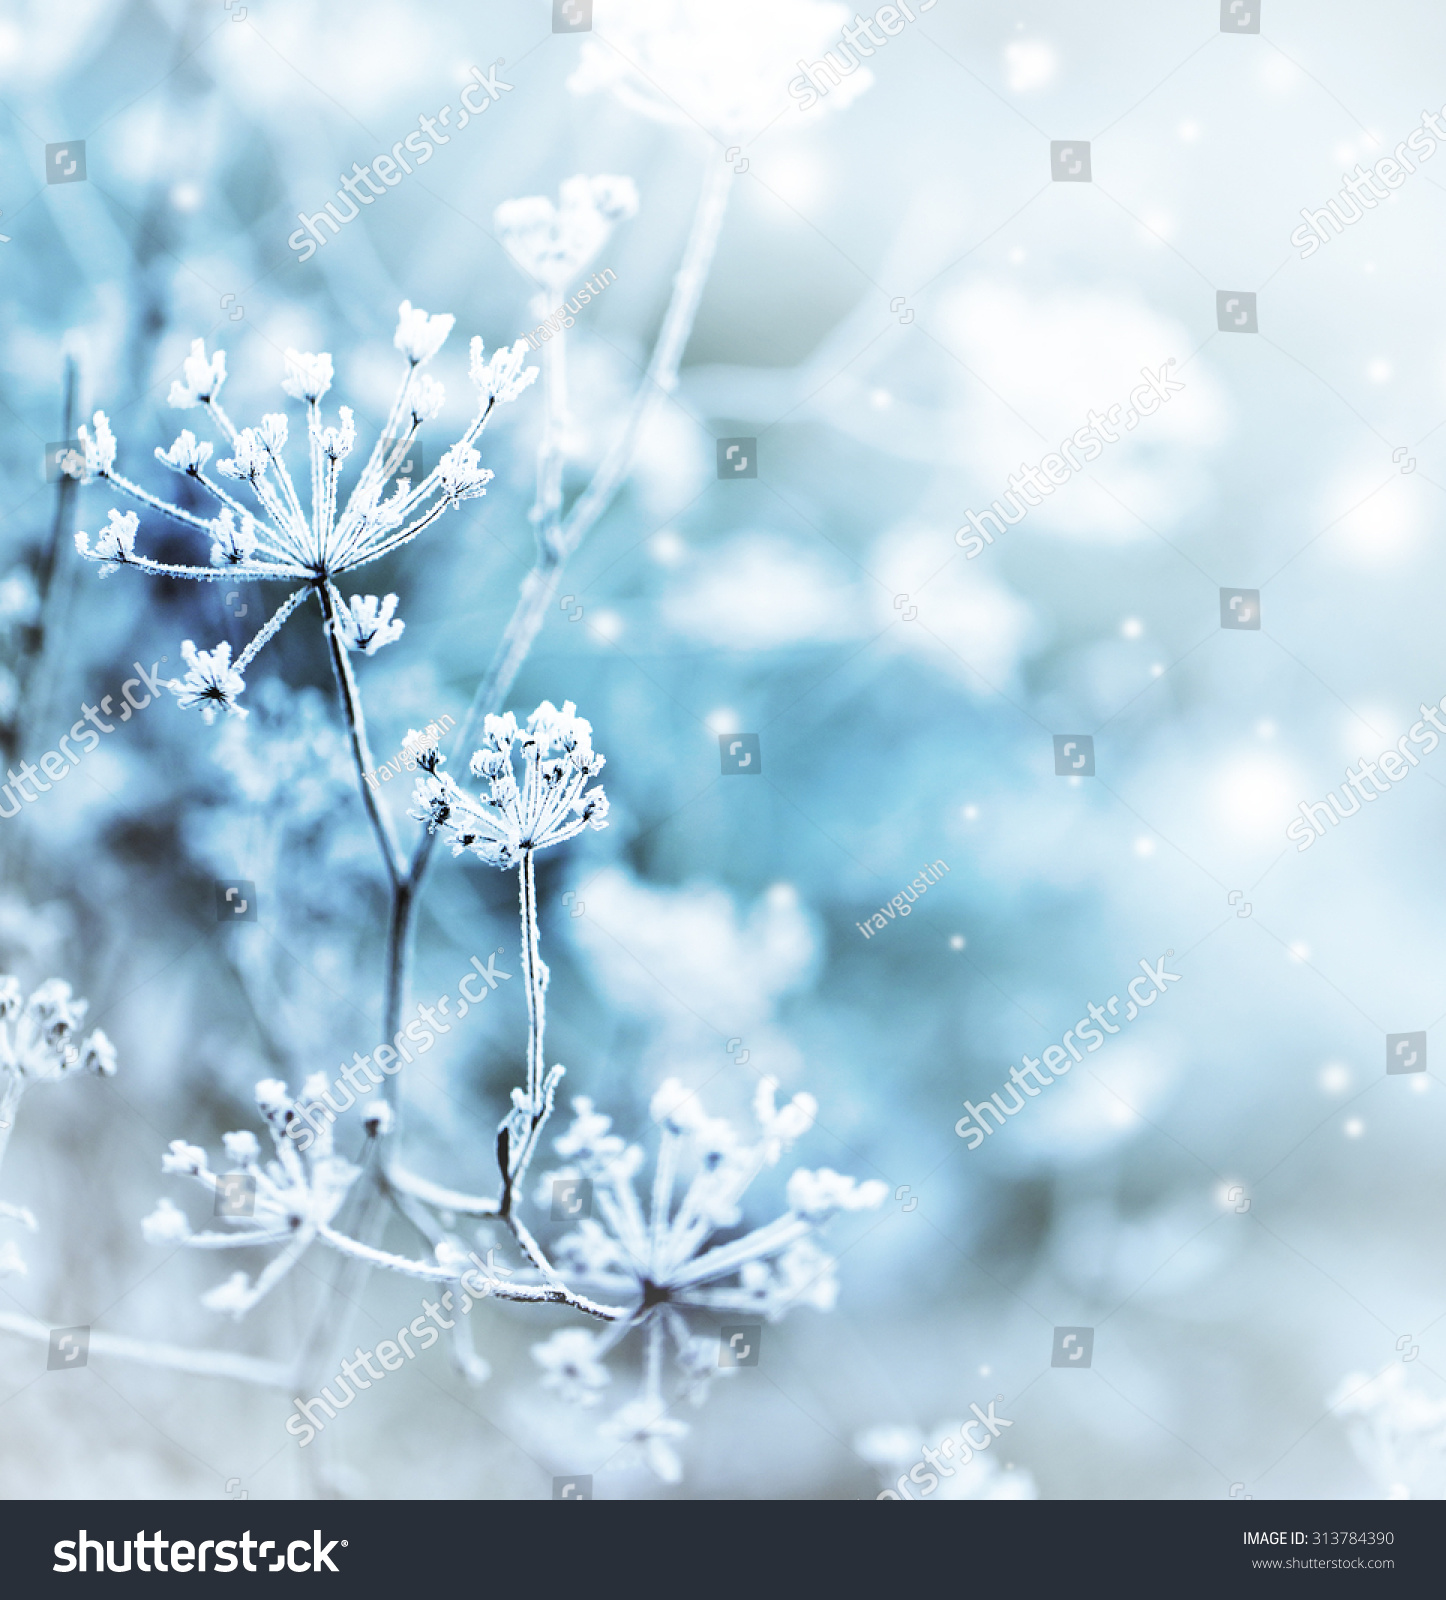 Winter landscape.Winter scene Frozenned flower